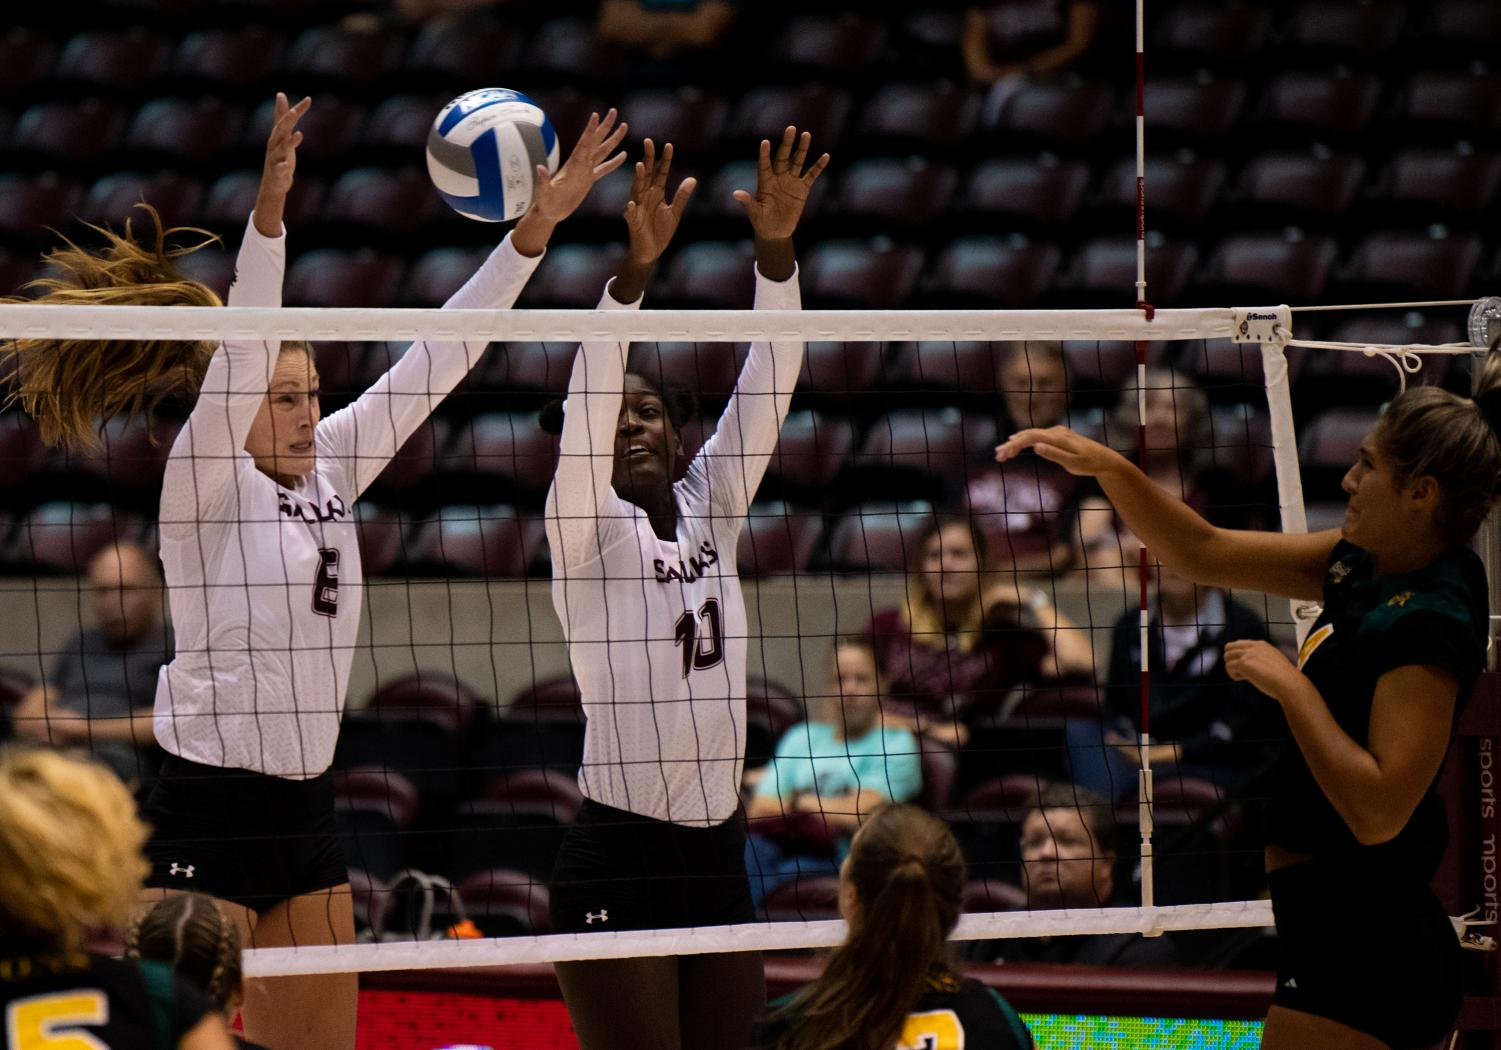 Salukis+Hannah+Becker+and+Savannah+Sheridan+attempt+to+block+the+ball+on+Saturday%2C+Sept.+7%2C+2019+during+the+Salukis%E2%80%99+3-1+win+against+the+Southeastern+Louisiana+University+Lions+at+the+Banterra+Center.+